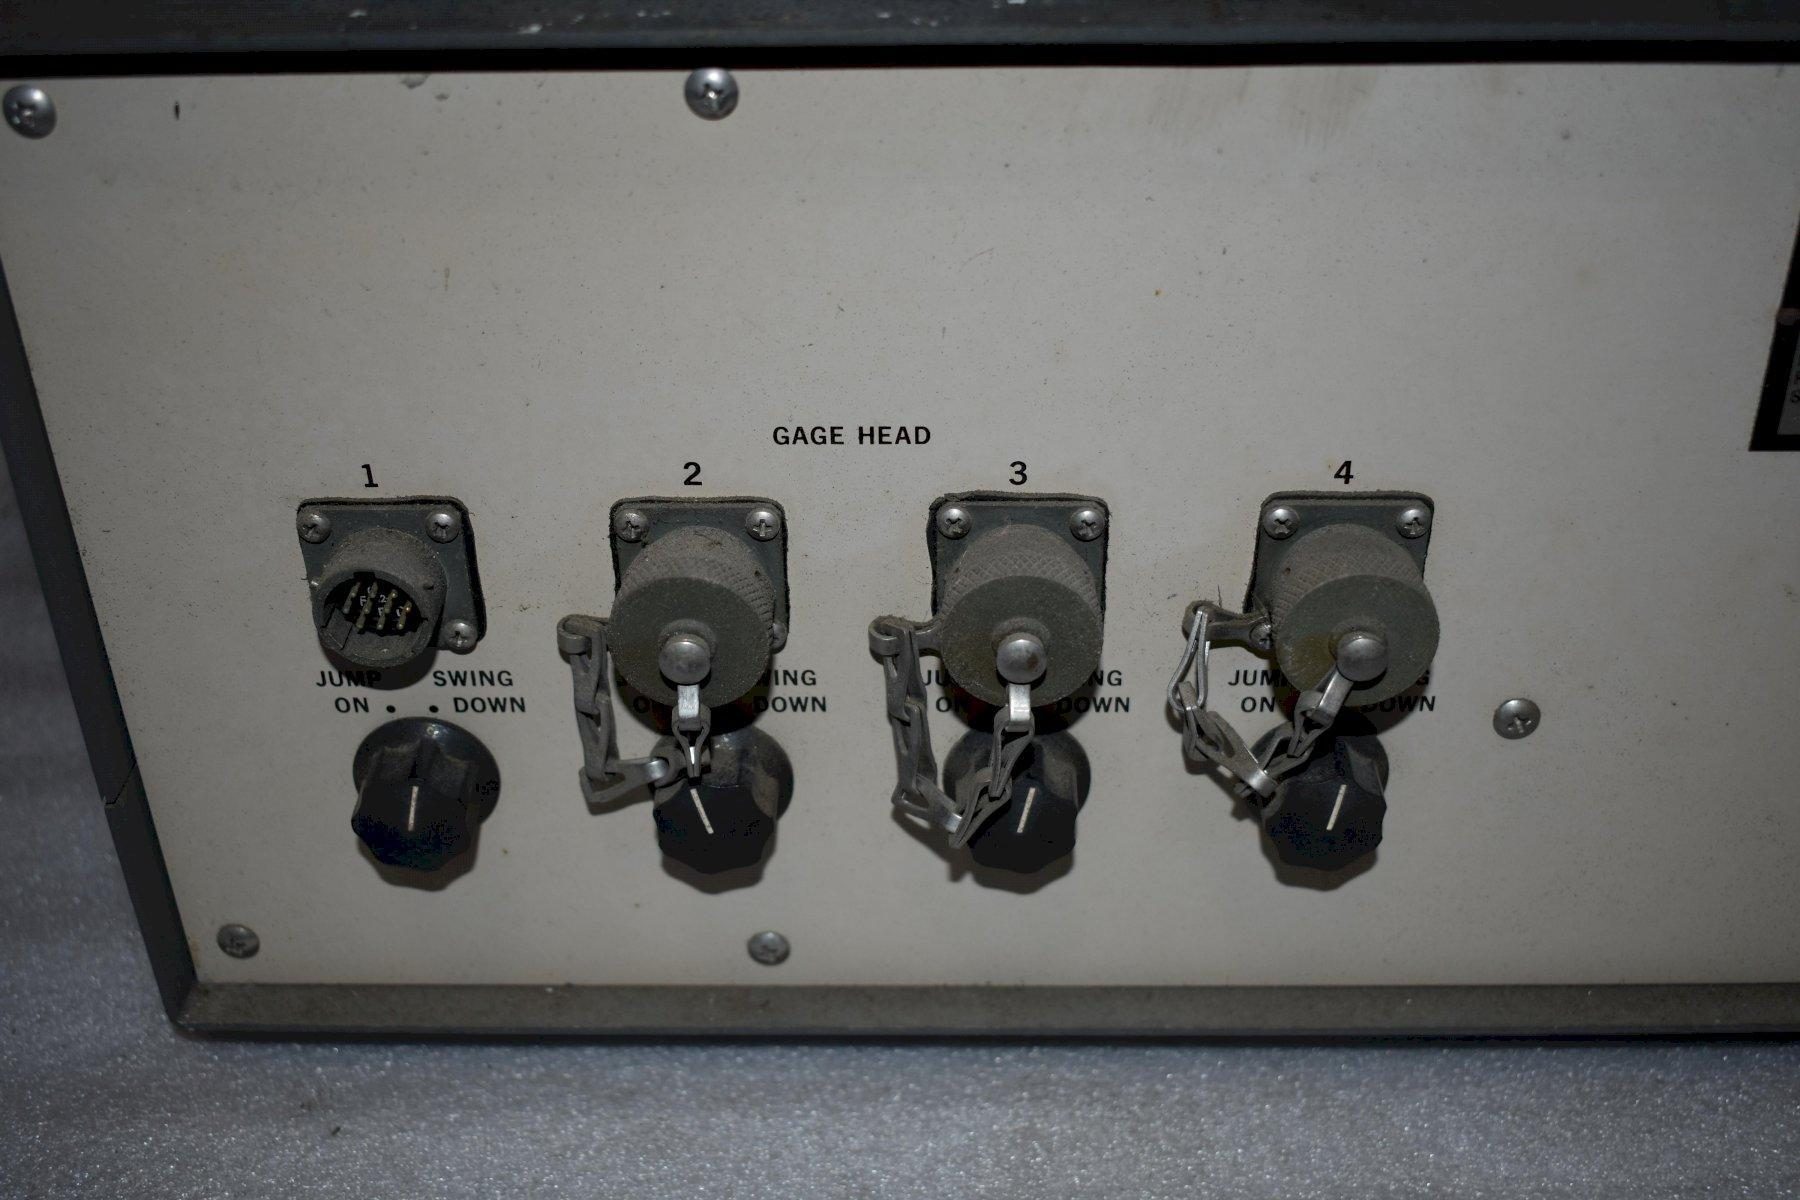 Control Gaging Inc Grinding Monitor, Model 801P-310A-44MG, Part # 042106.